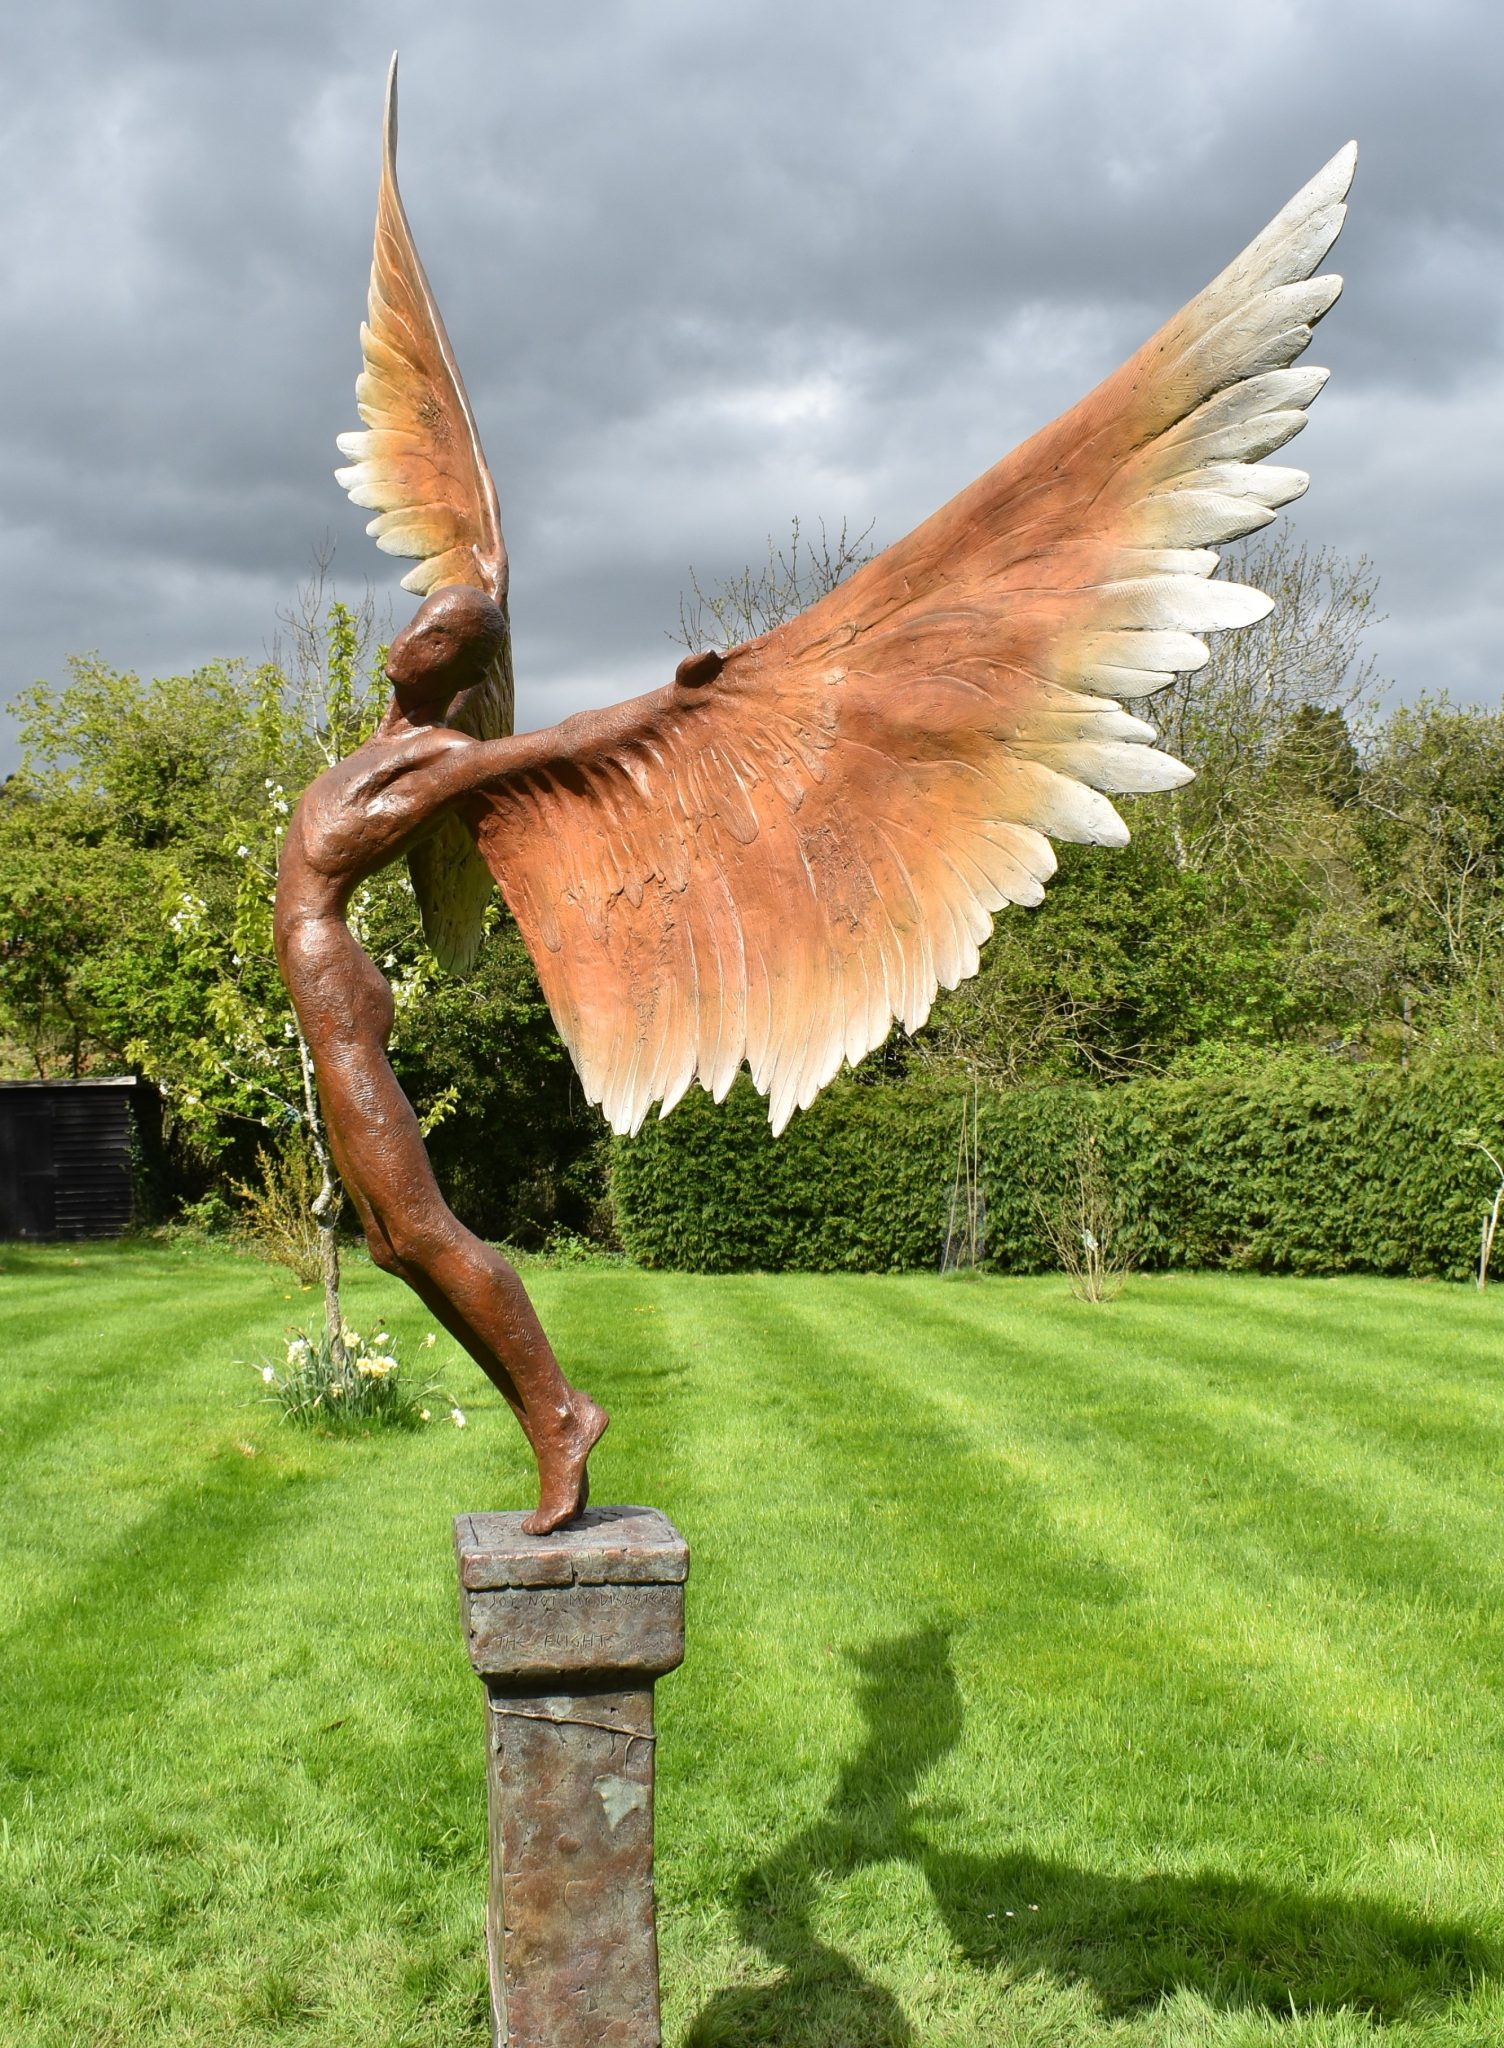 Boy with wings sculpture for sale